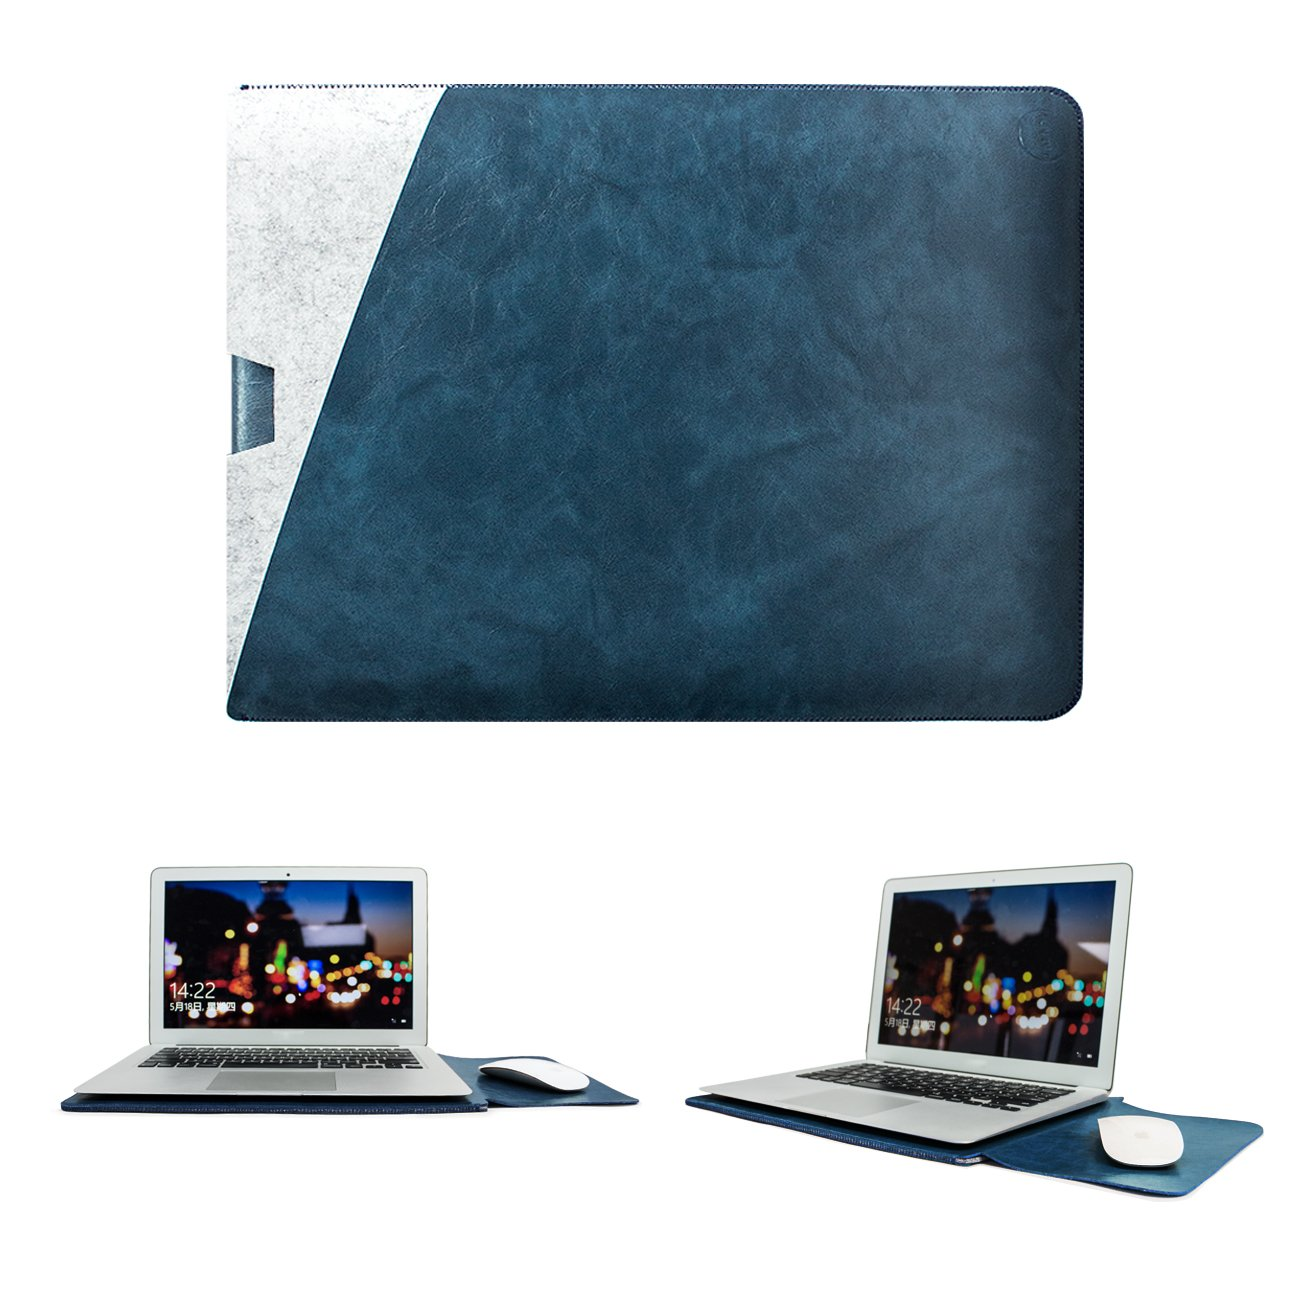 WALNEW 13-Inch Laptop Sleeve Case Bag for 13 Inch MacBook Air 2020/2019/2018 & MacBook Pro 2019/2018/2017/2016, Soft PU Leather MacBook Cover with Built-in Mouse Pad and Dual Pockets, Dark Blue